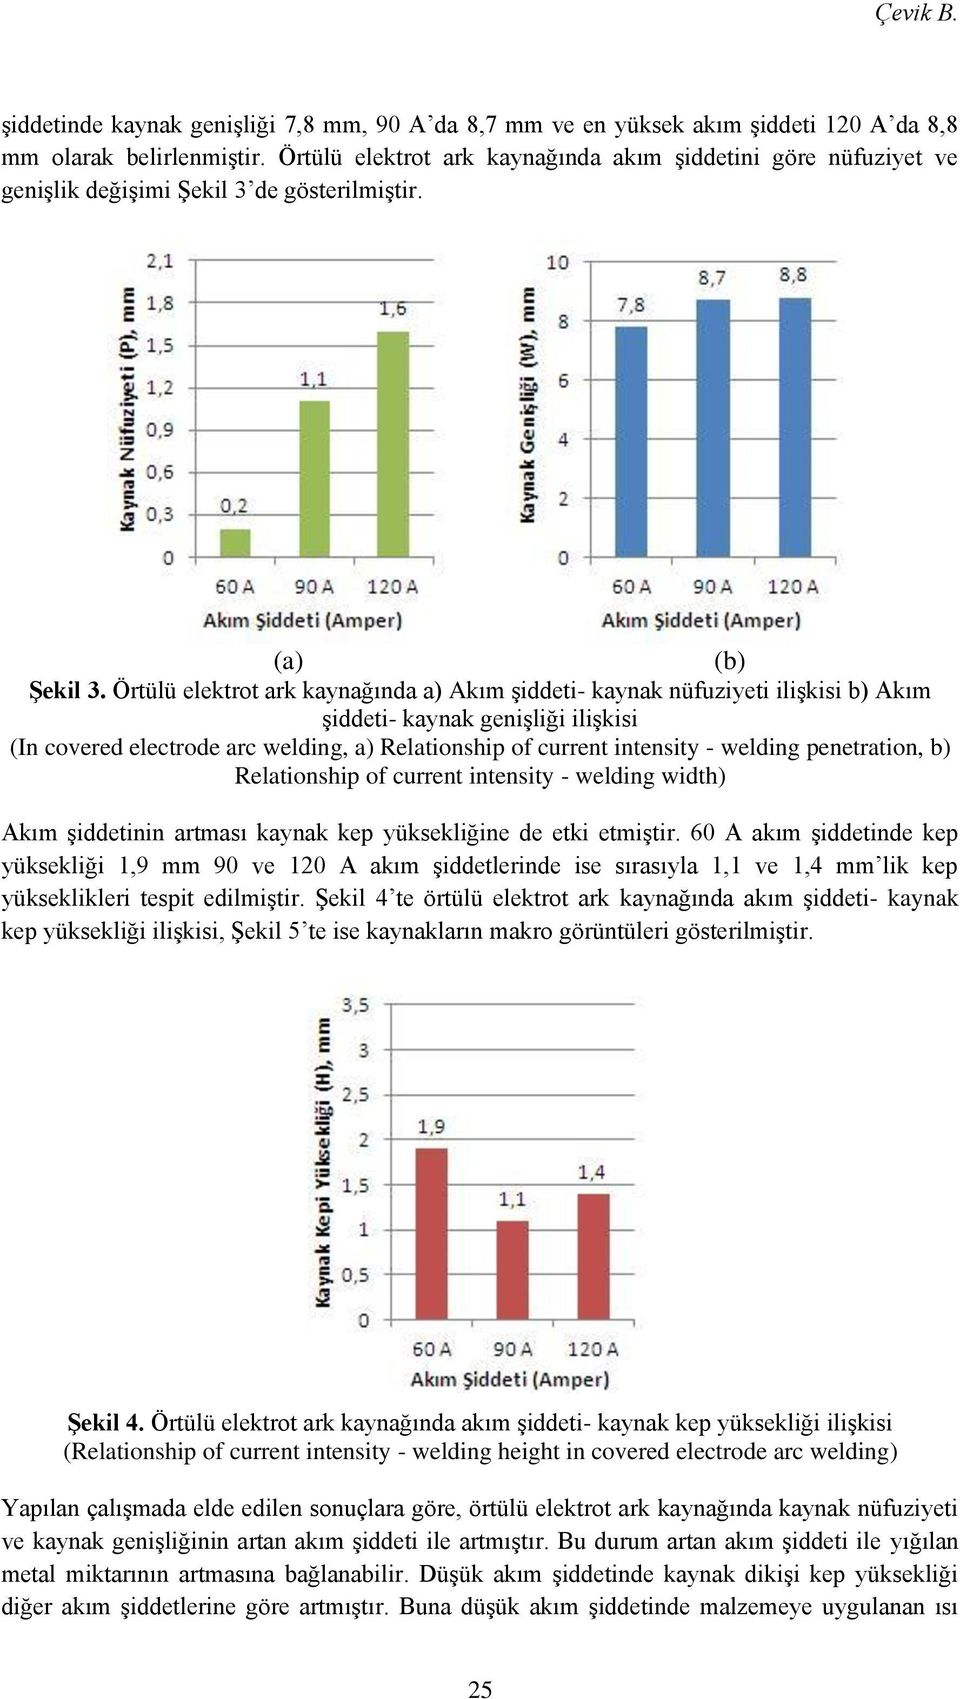 Örtülü elektrot ark kaynağında a) Akım şiddeti- kaynak nüfuziyeti ilişkisi b) Akım şiddeti- kaynak genişliği ilişkisi (In covered electrode arc welding, a) Relationship of current intensity - welding